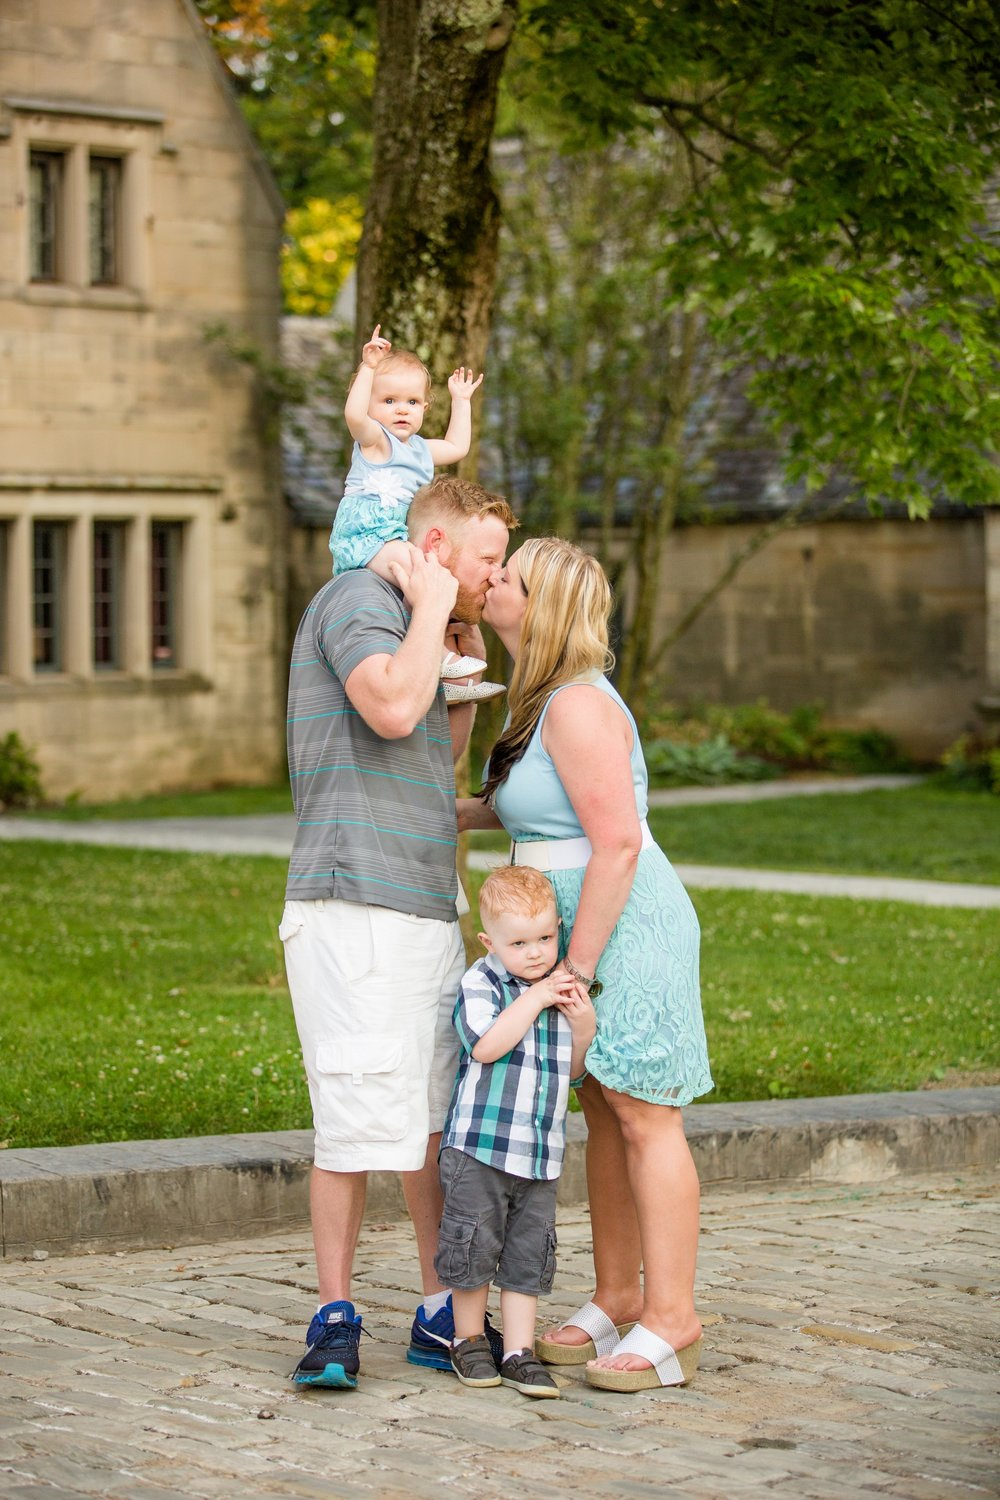 family photographer pittsburgh, hartwood acres photos, best location for photoshoot in pittsburgh, best places to take family pictures in pittsburgh, family photography ideas